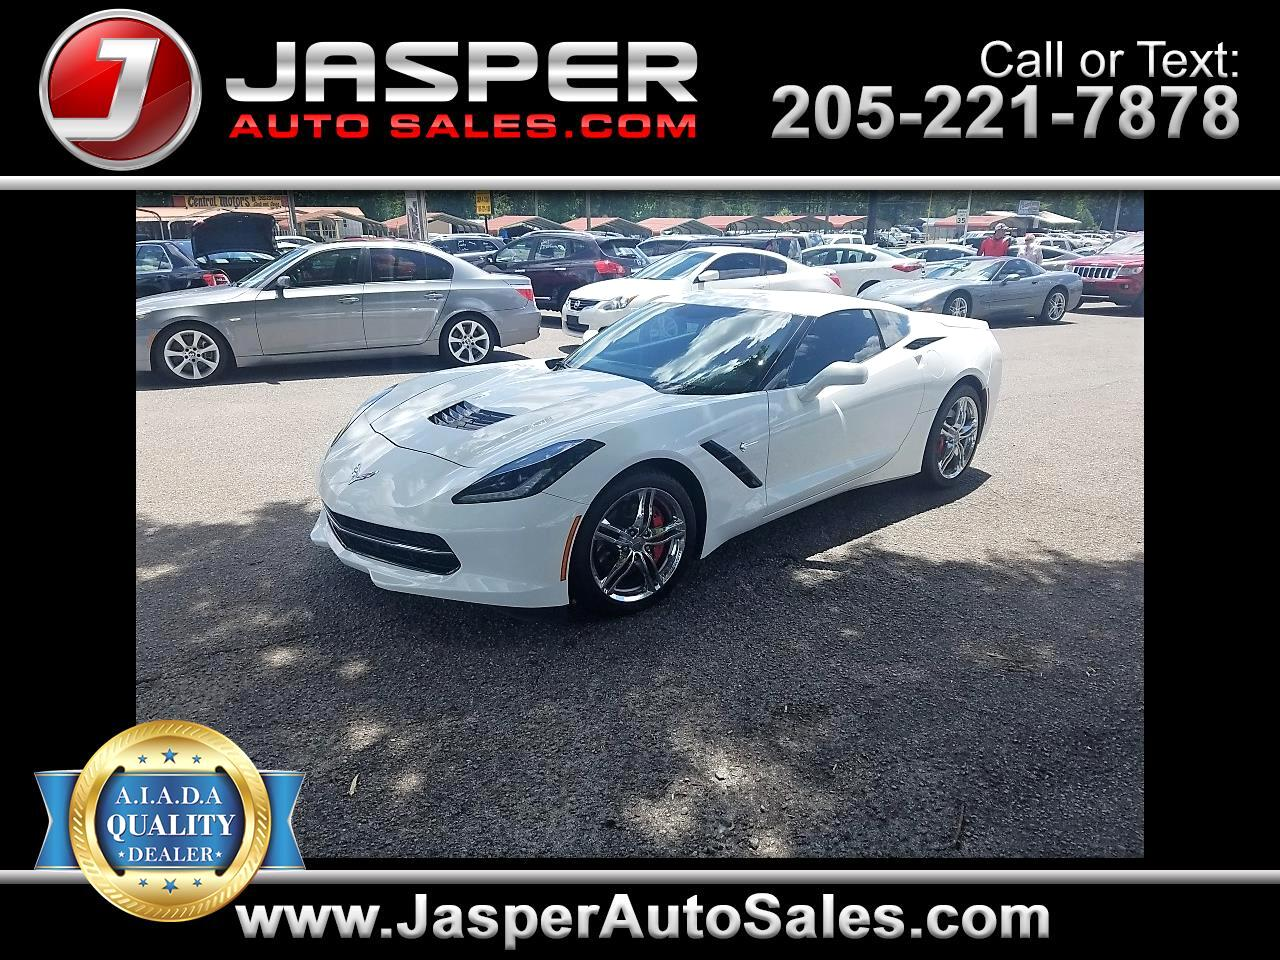 2017 Chevrolet Corvette 2dr Stingray Cpe w/1LT